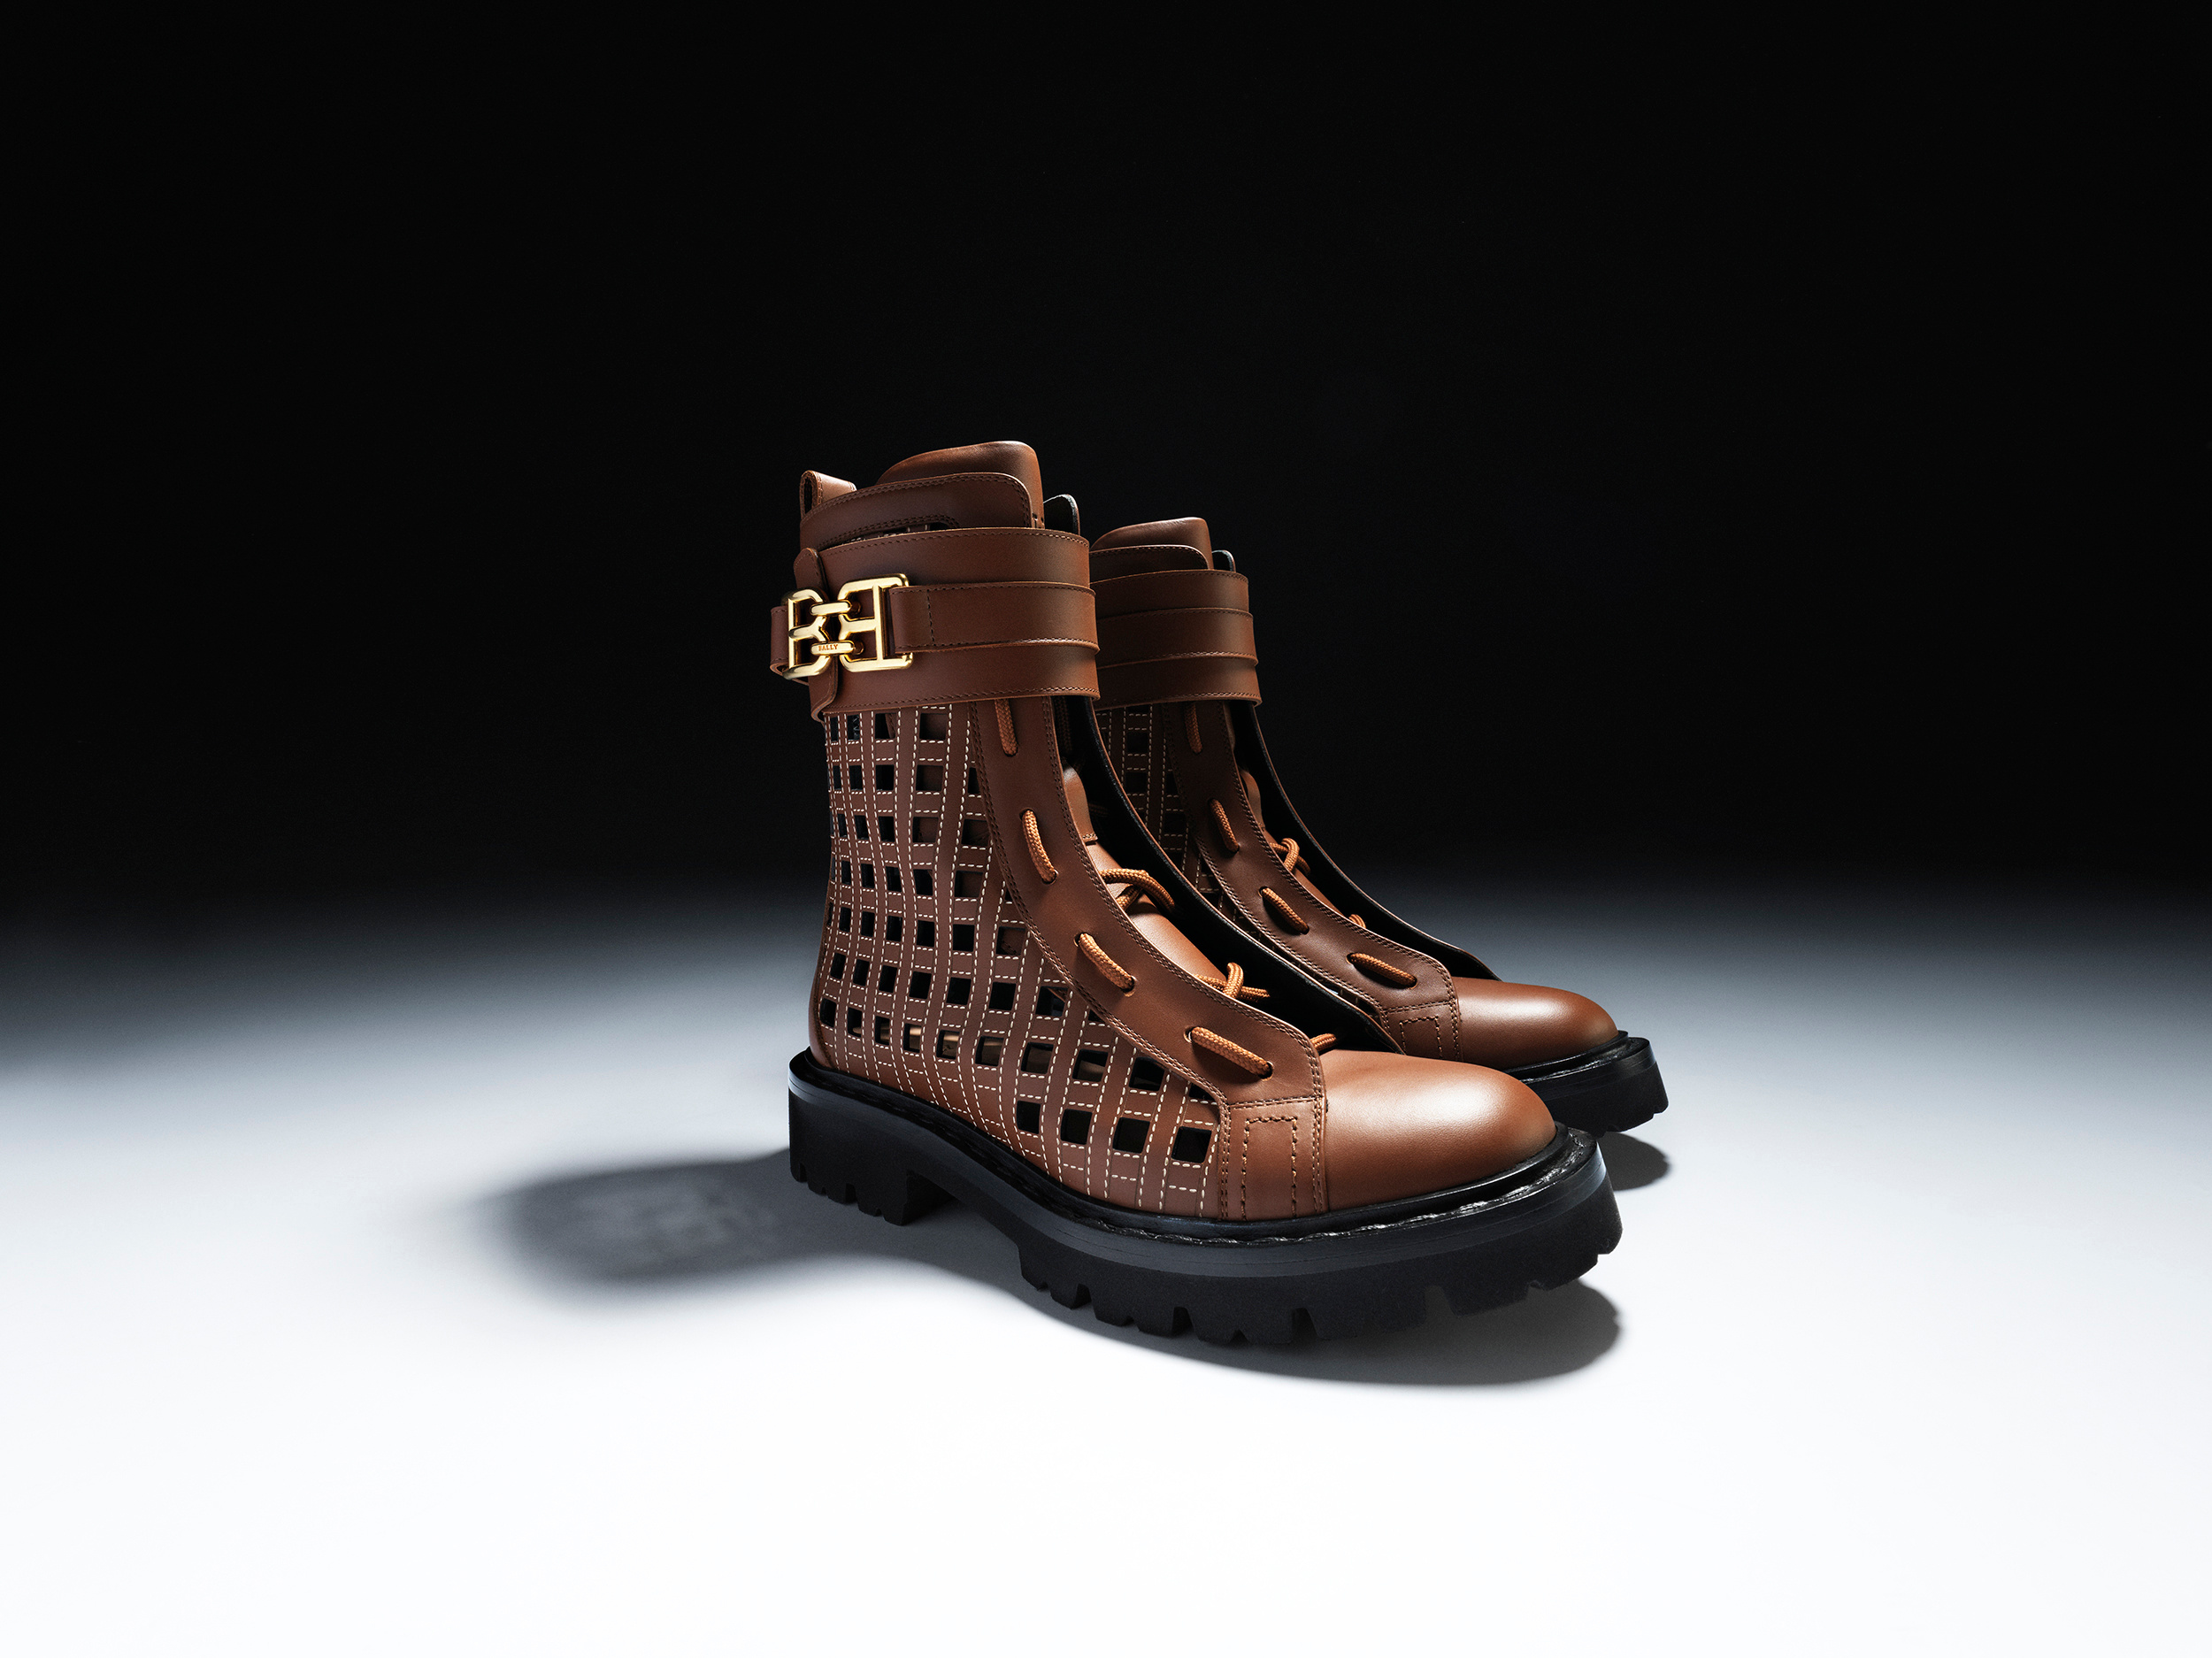 Bally Laser-Cut Collection